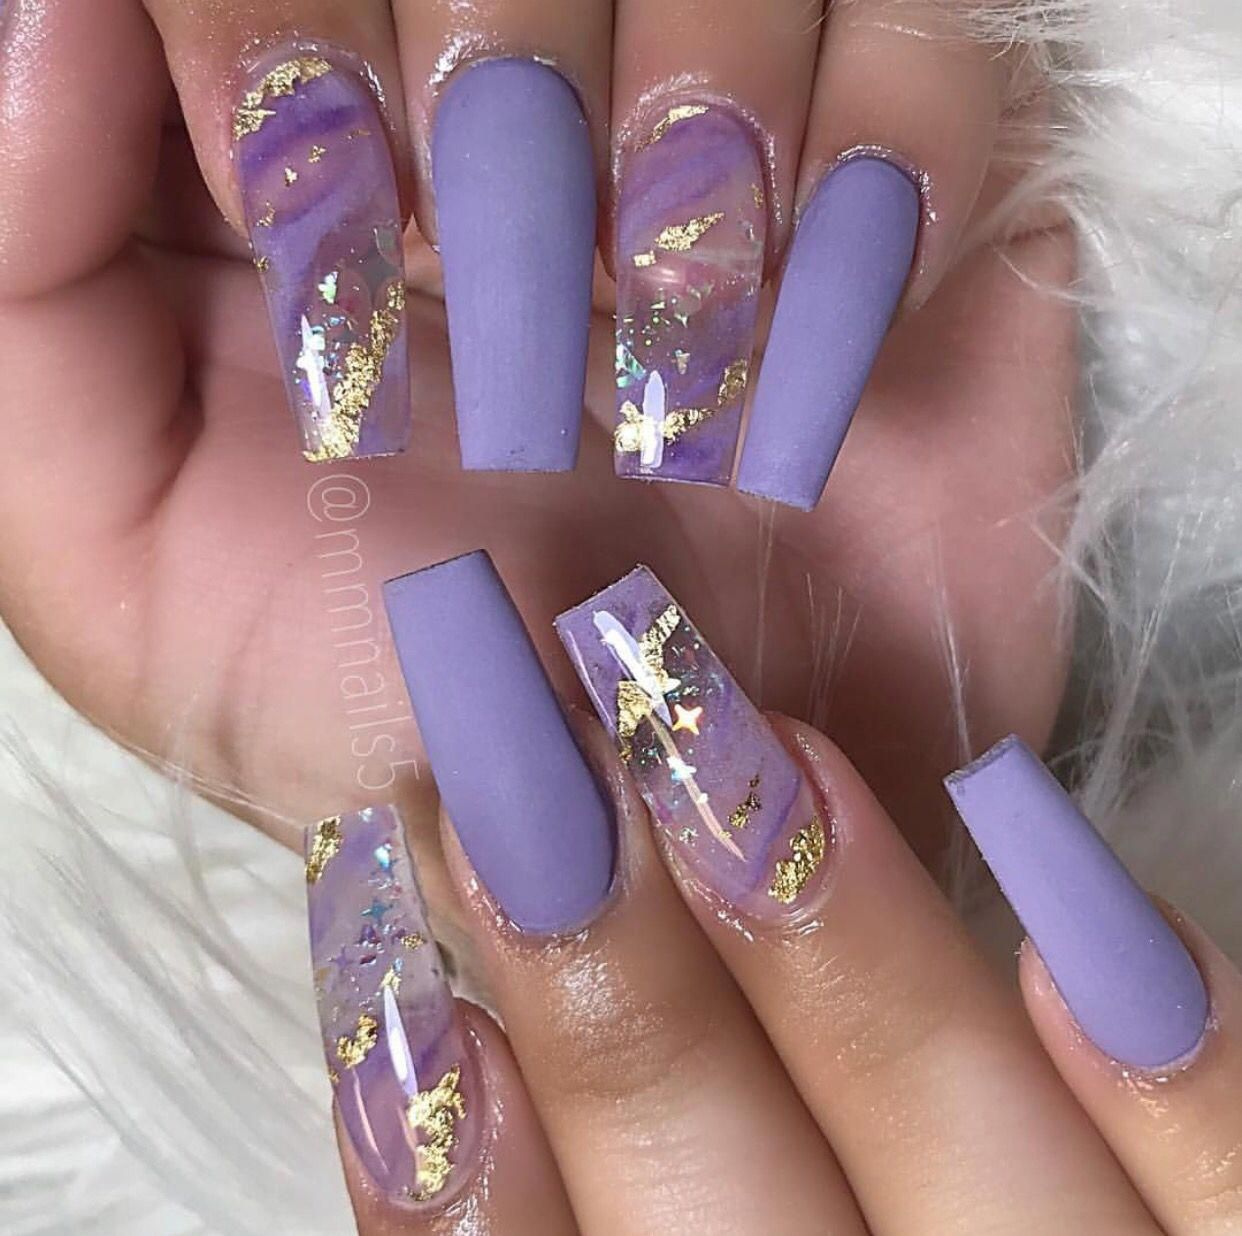 20 Great Ideas How To Make Acrylic Nails By Yourself Acrylicnails Blue Acrylic Nails Marble Acrylic Nails Beginner Nail Designs